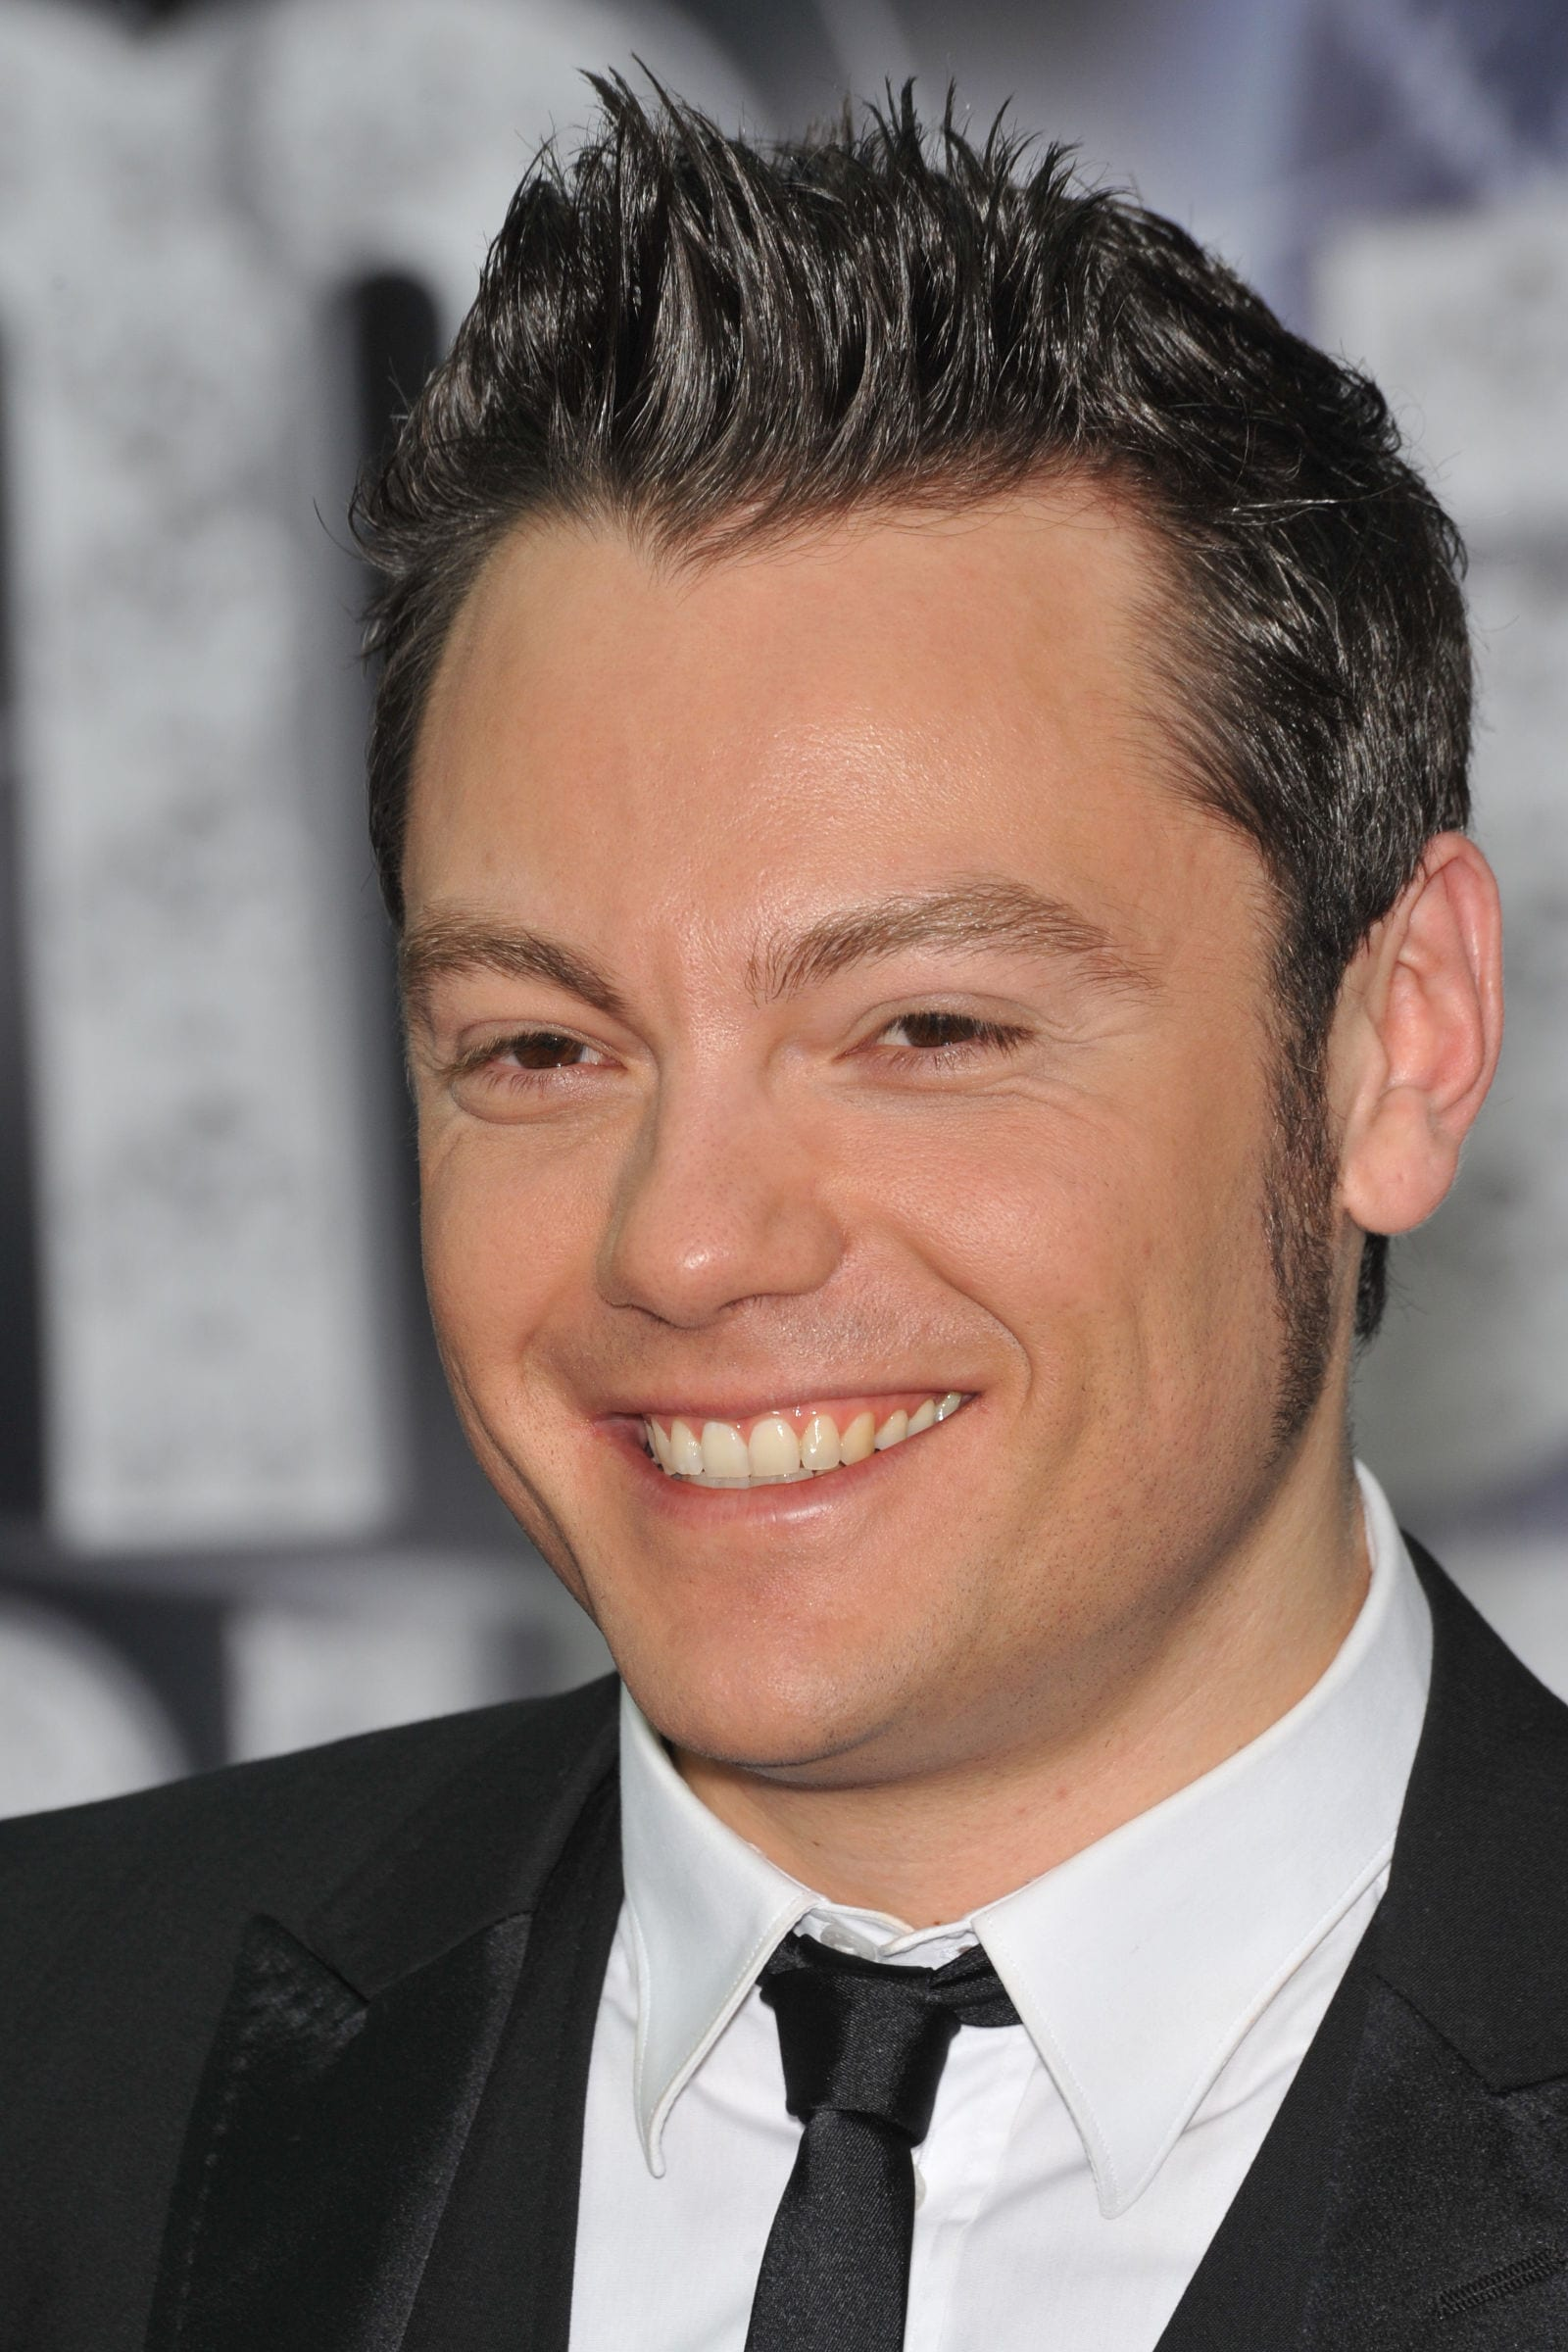 Tiziano Ferro spiky hair